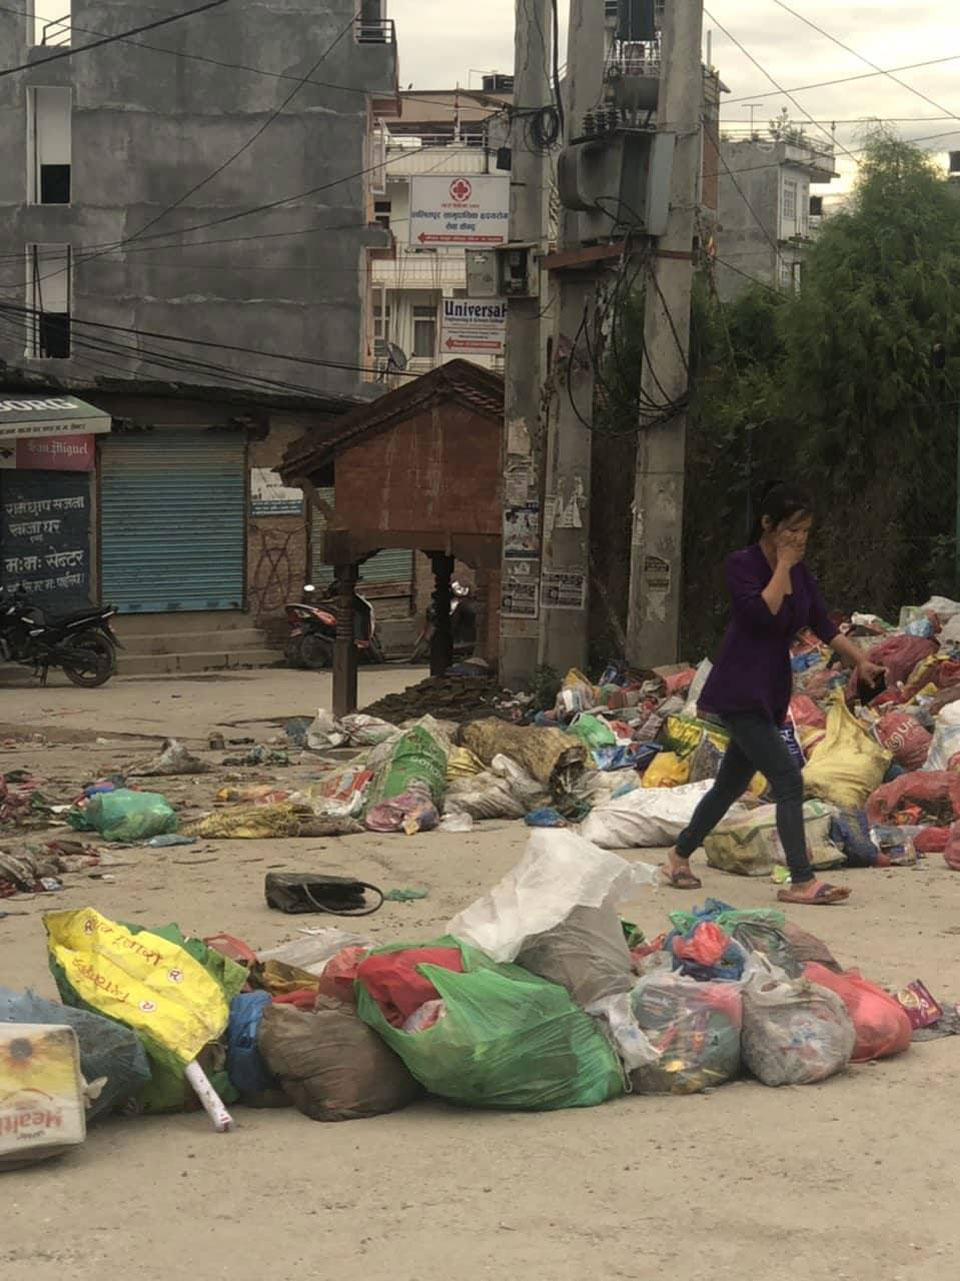 Cross roads stinking and disease outbreak looming in Kathmandu